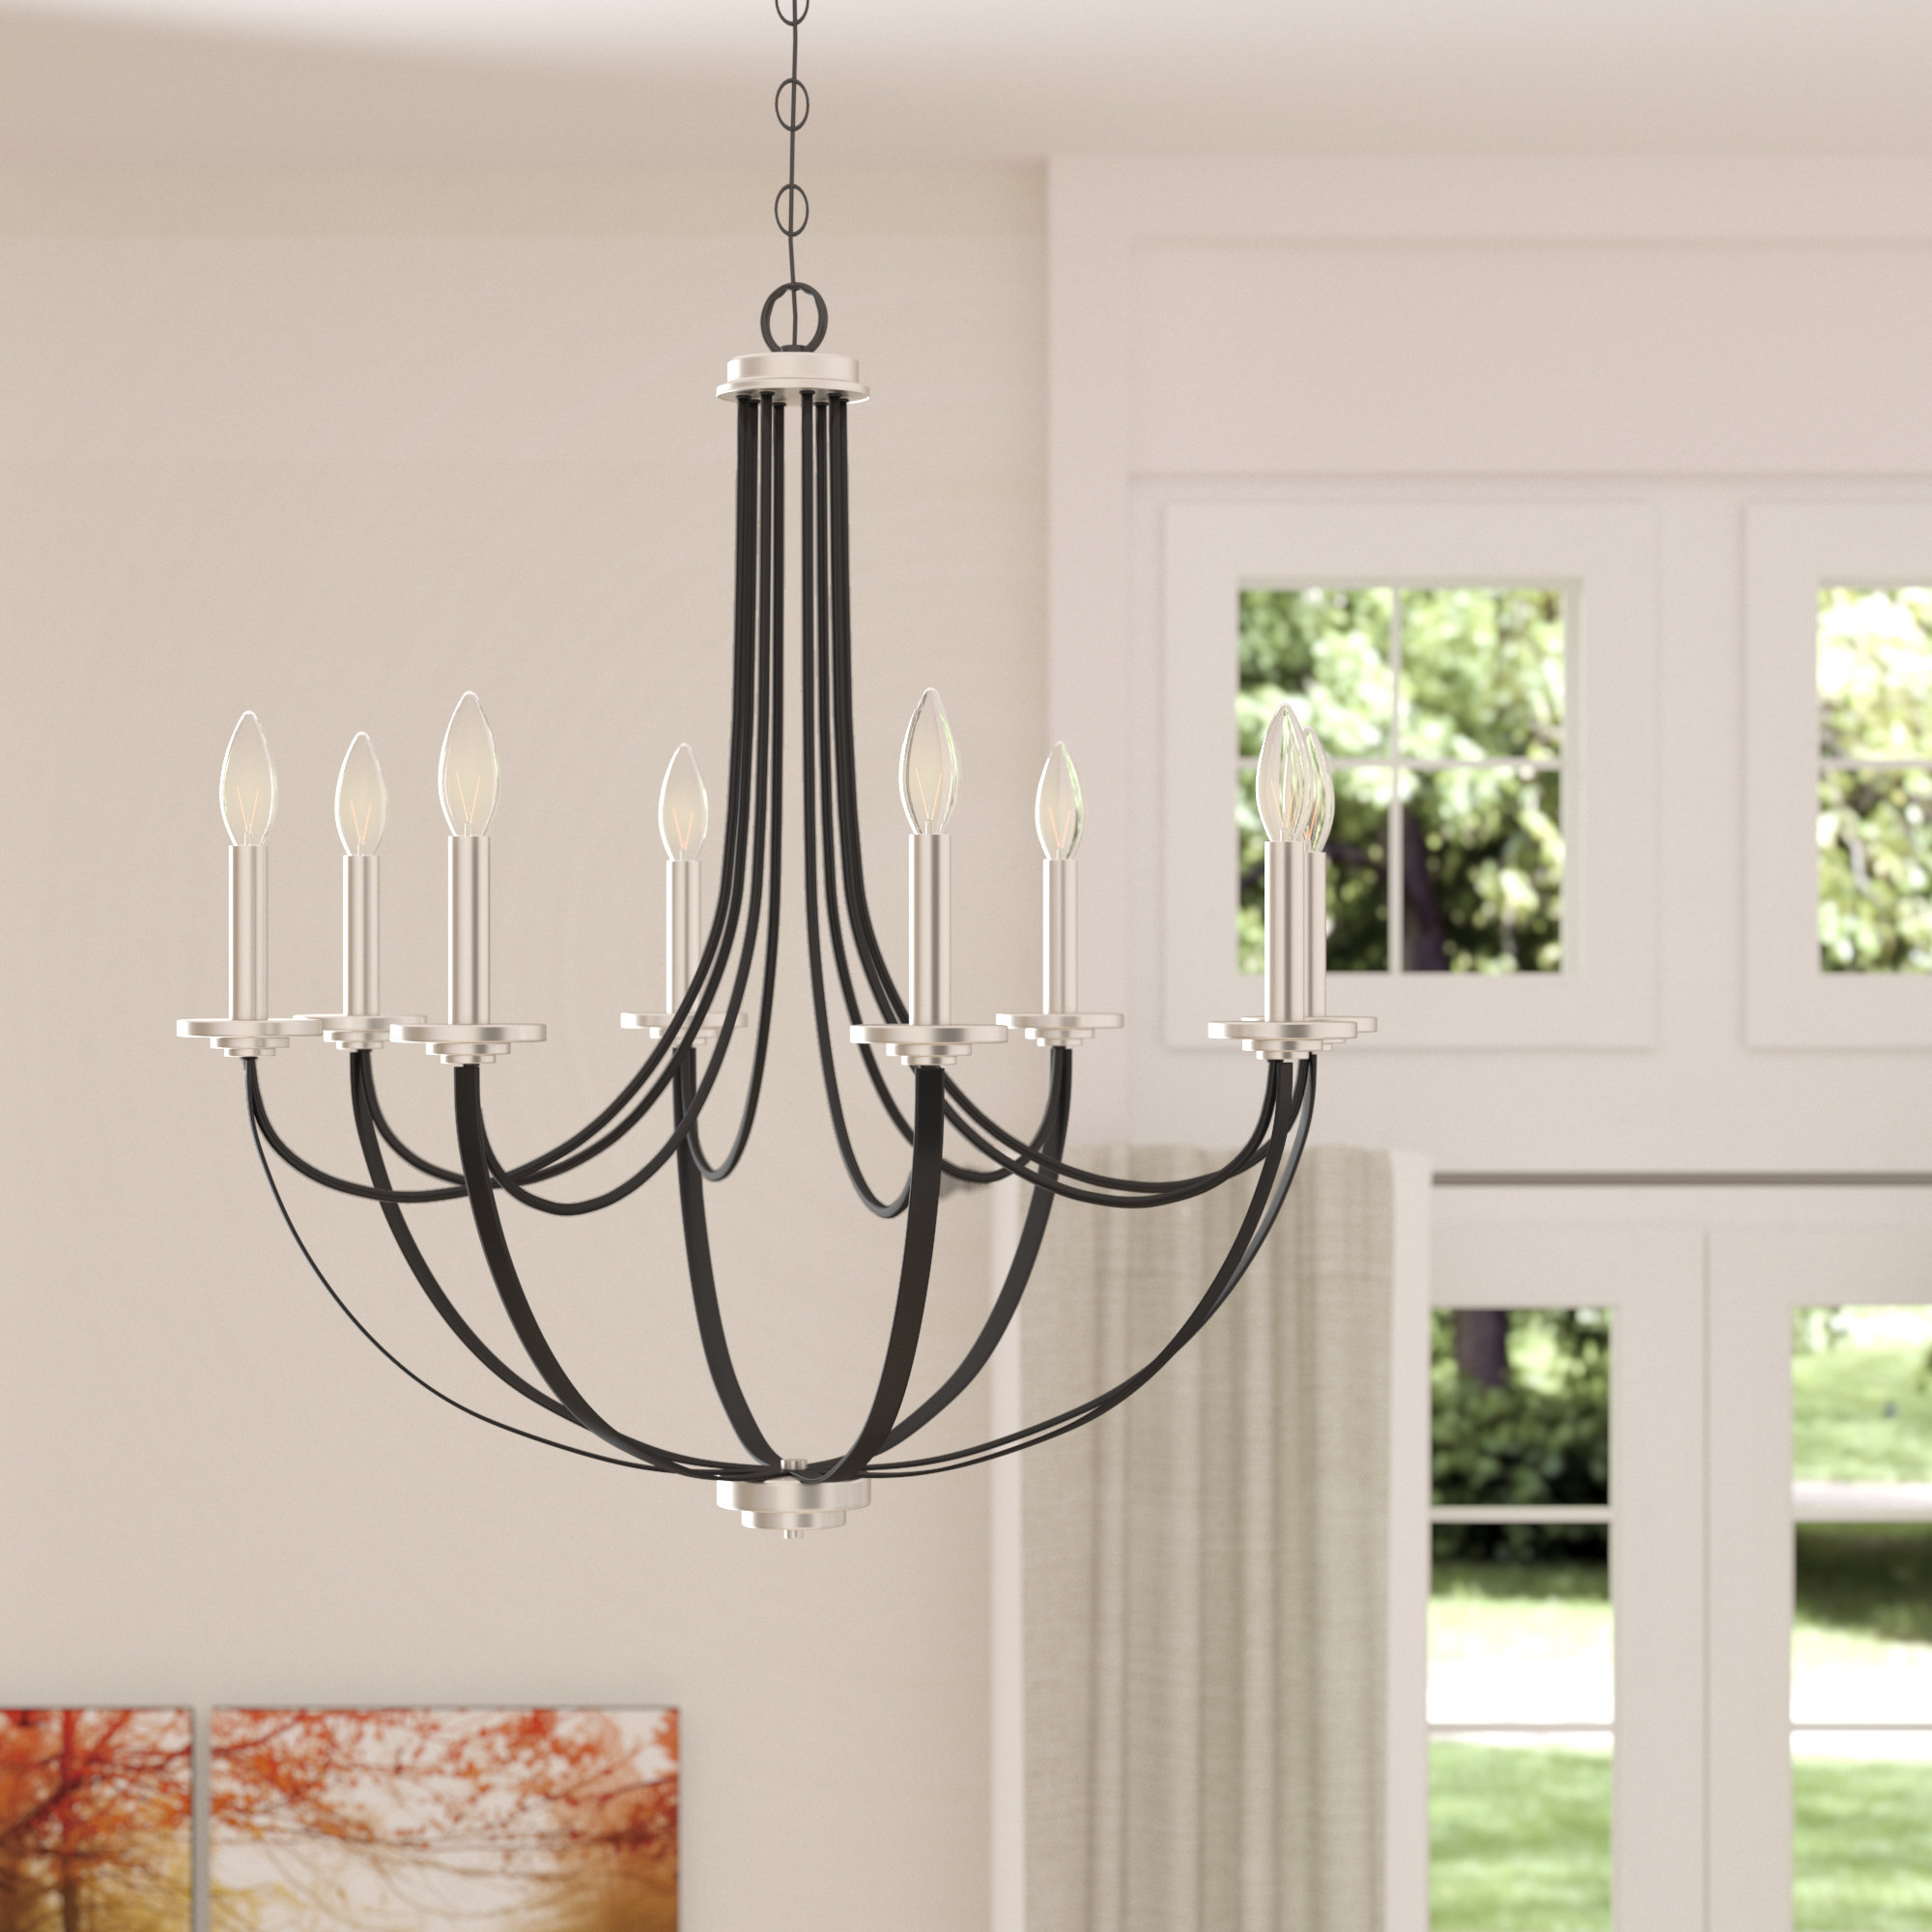 Siavash Mystic Black 8 Light Candle Style Chandelier Regarding Most Popular Shaylee 8 Light Candle Style Chandeliers (View 19 of 20)